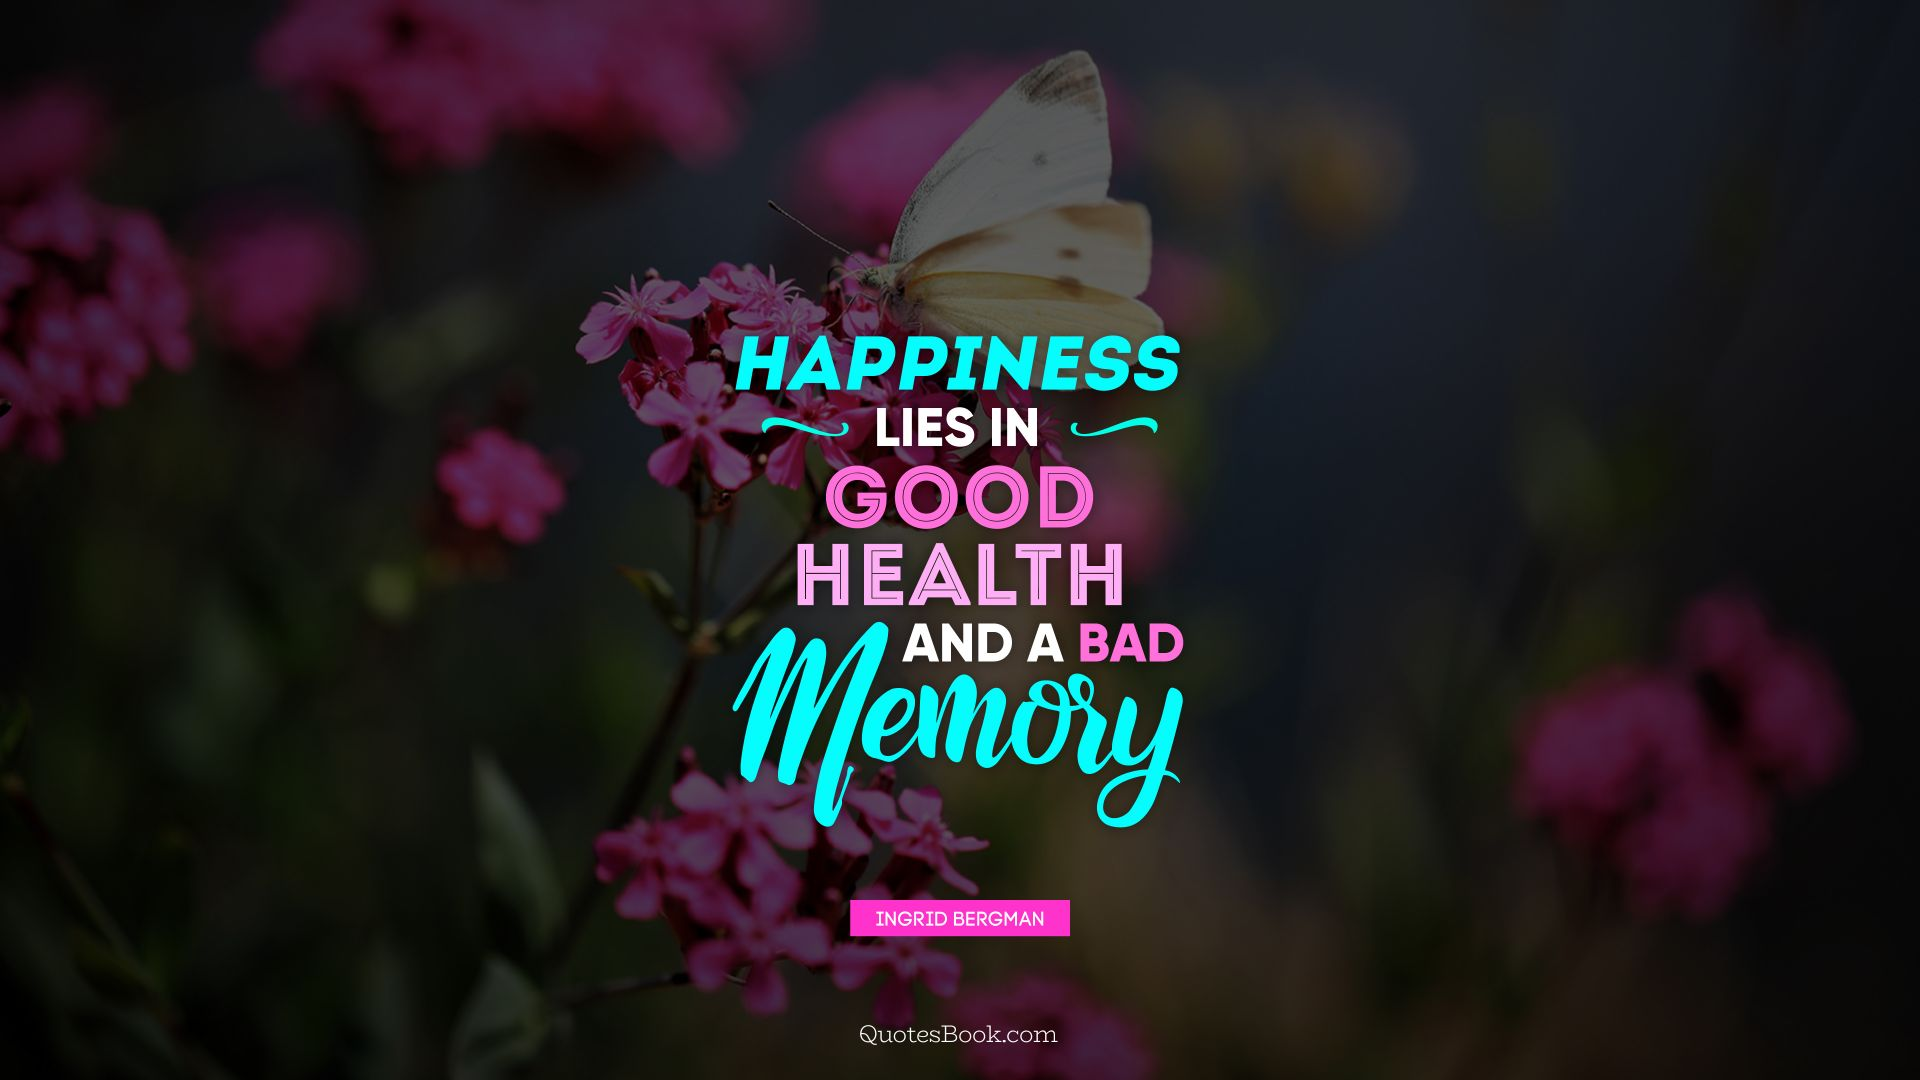 Happiness lies in good health and a bad memory. - Quote by Ingrid Bergman